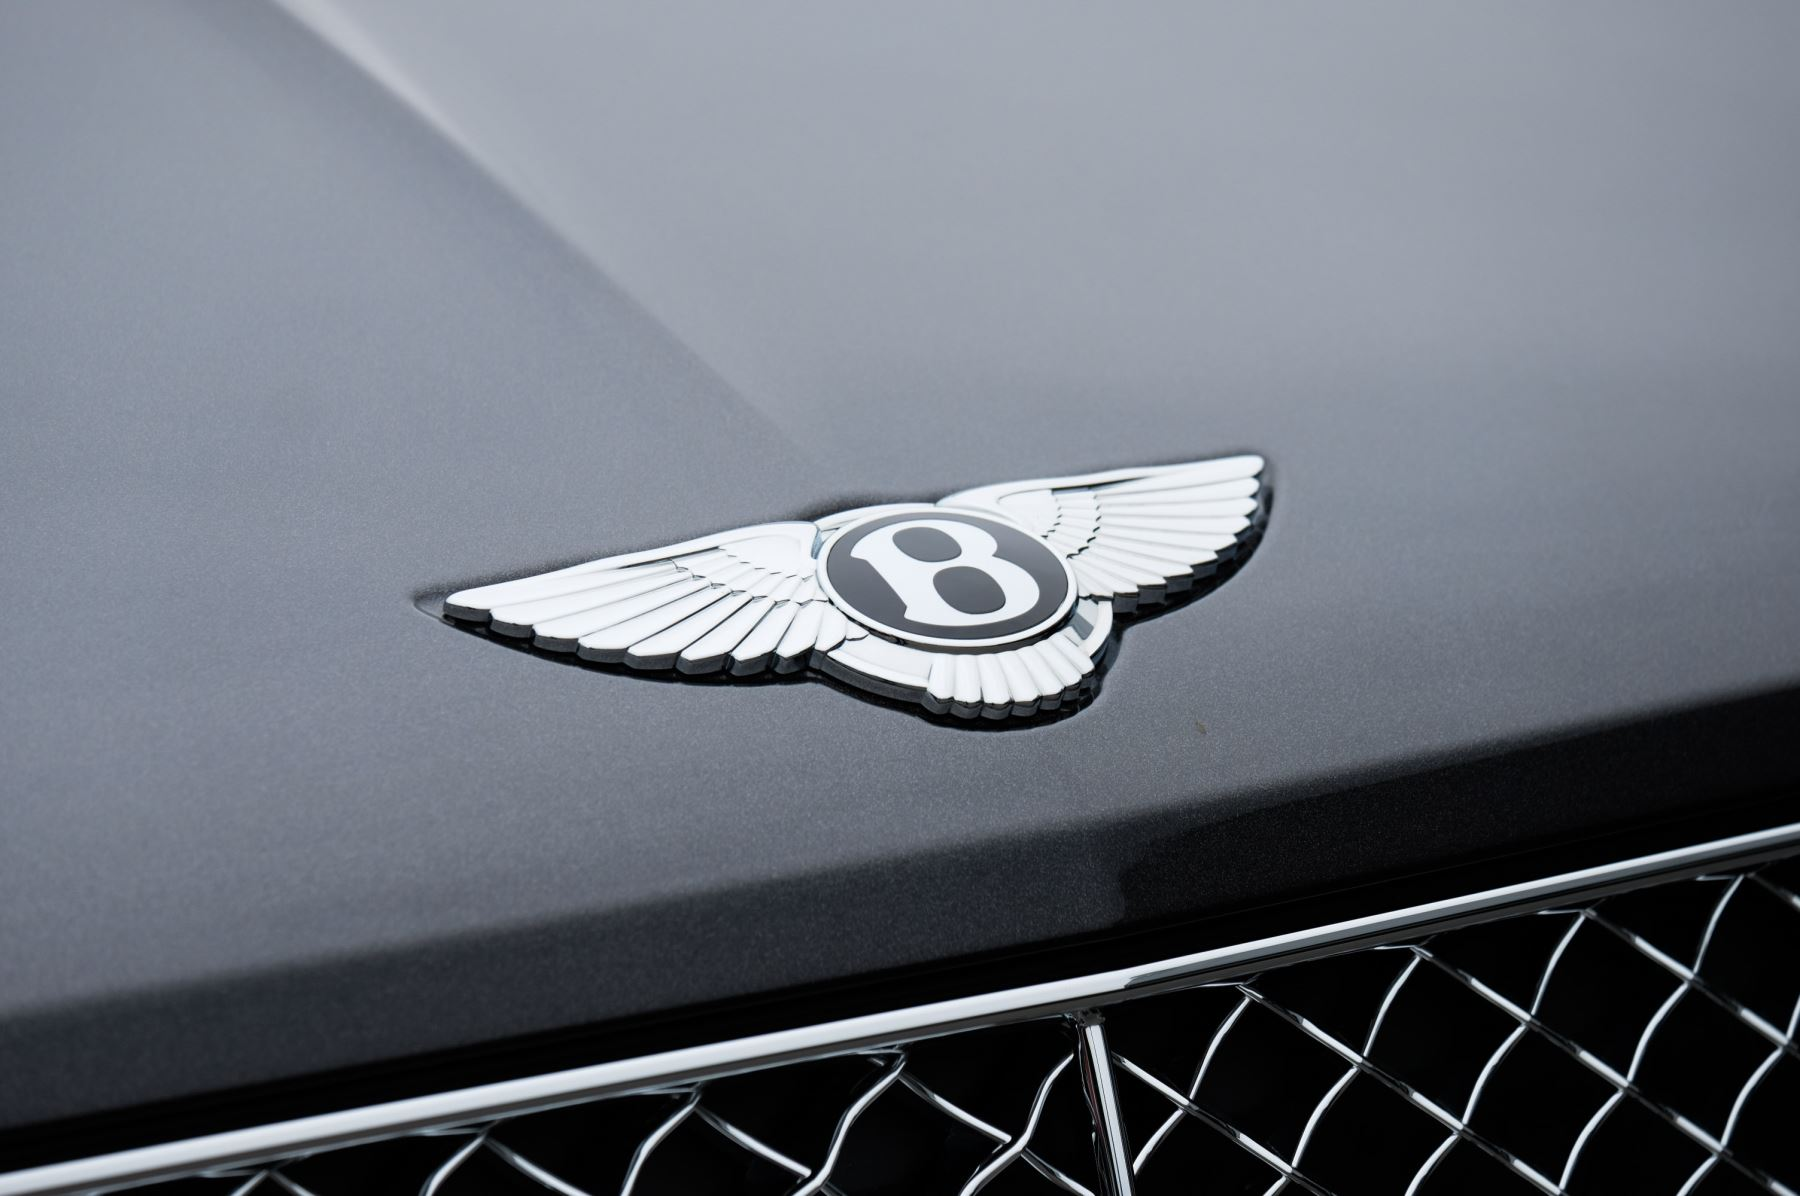 Bentley Bentayga 4.0 V8 5dr [4 Seat] - First Edition - All Terrain Specification image 8